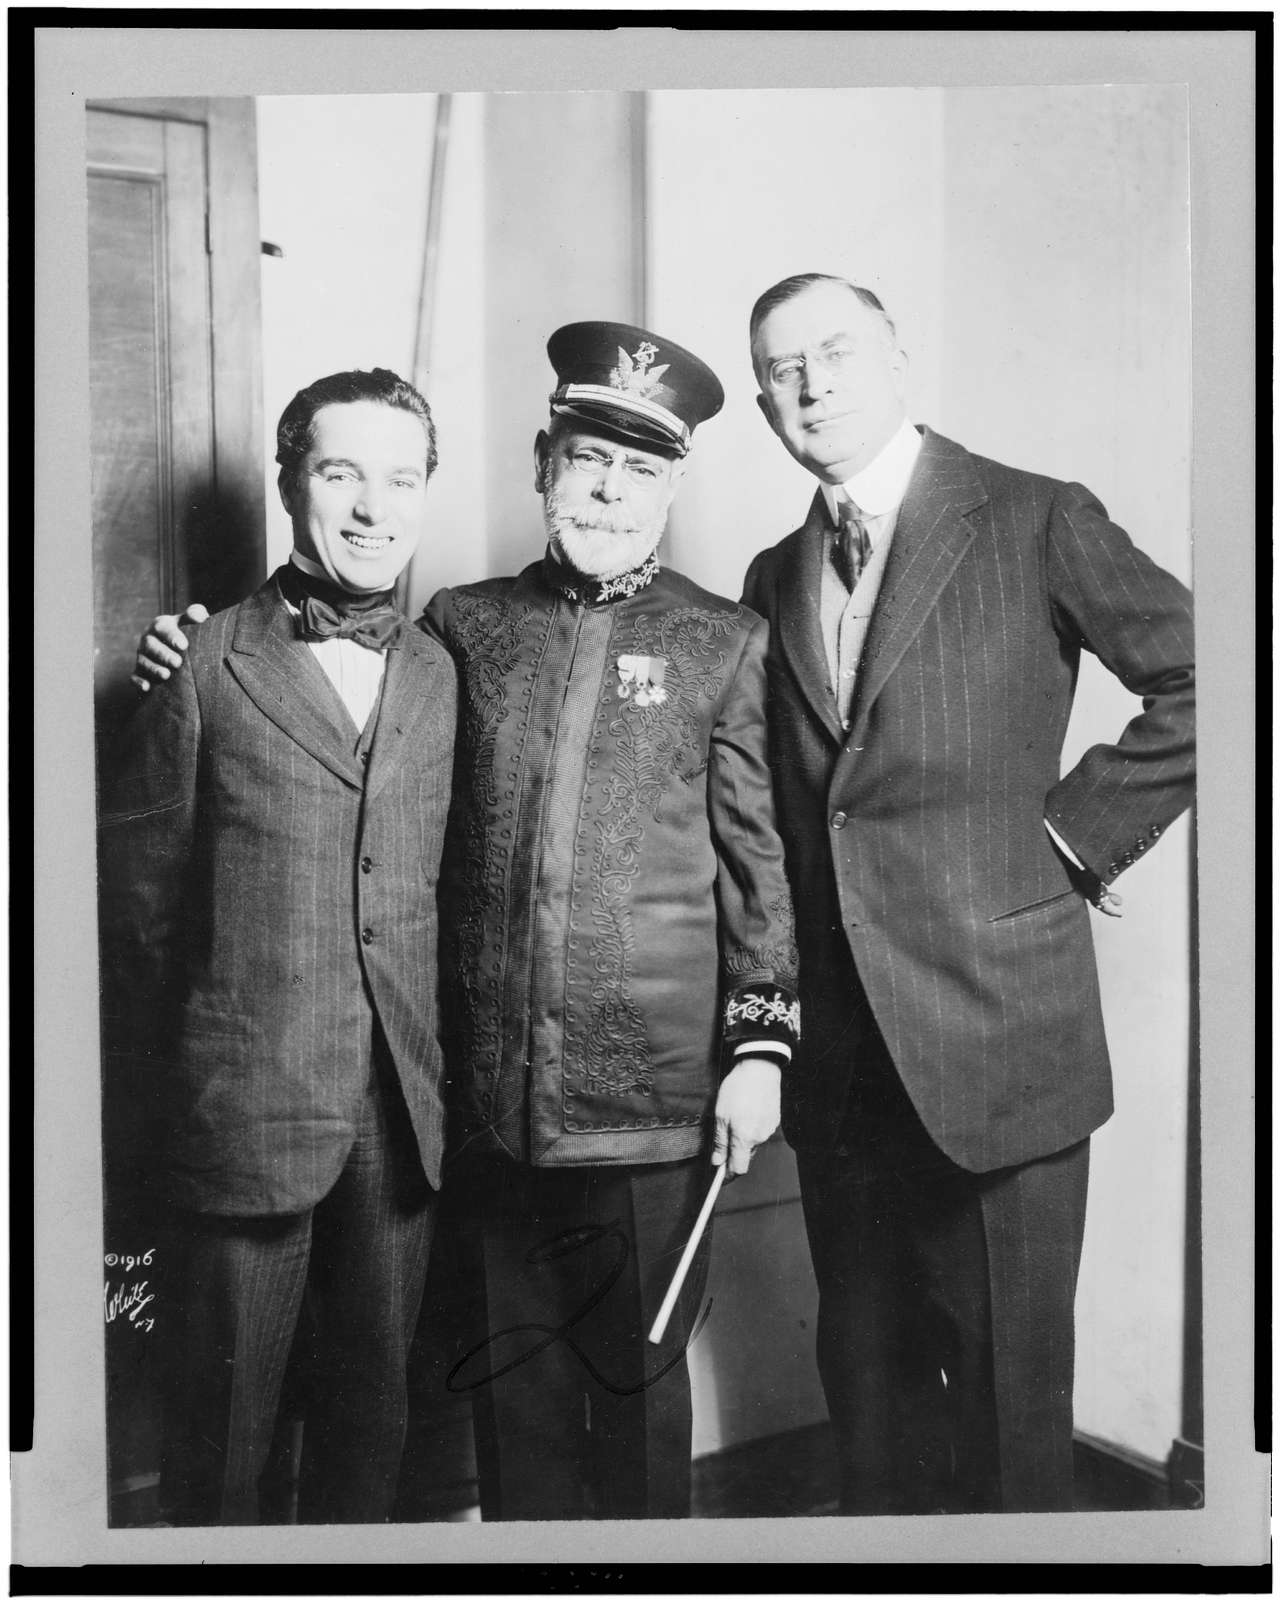 [John P. Sousa, Charlie Chaplin, and Clifford Harmon, full-length portrait, standing, facing front]